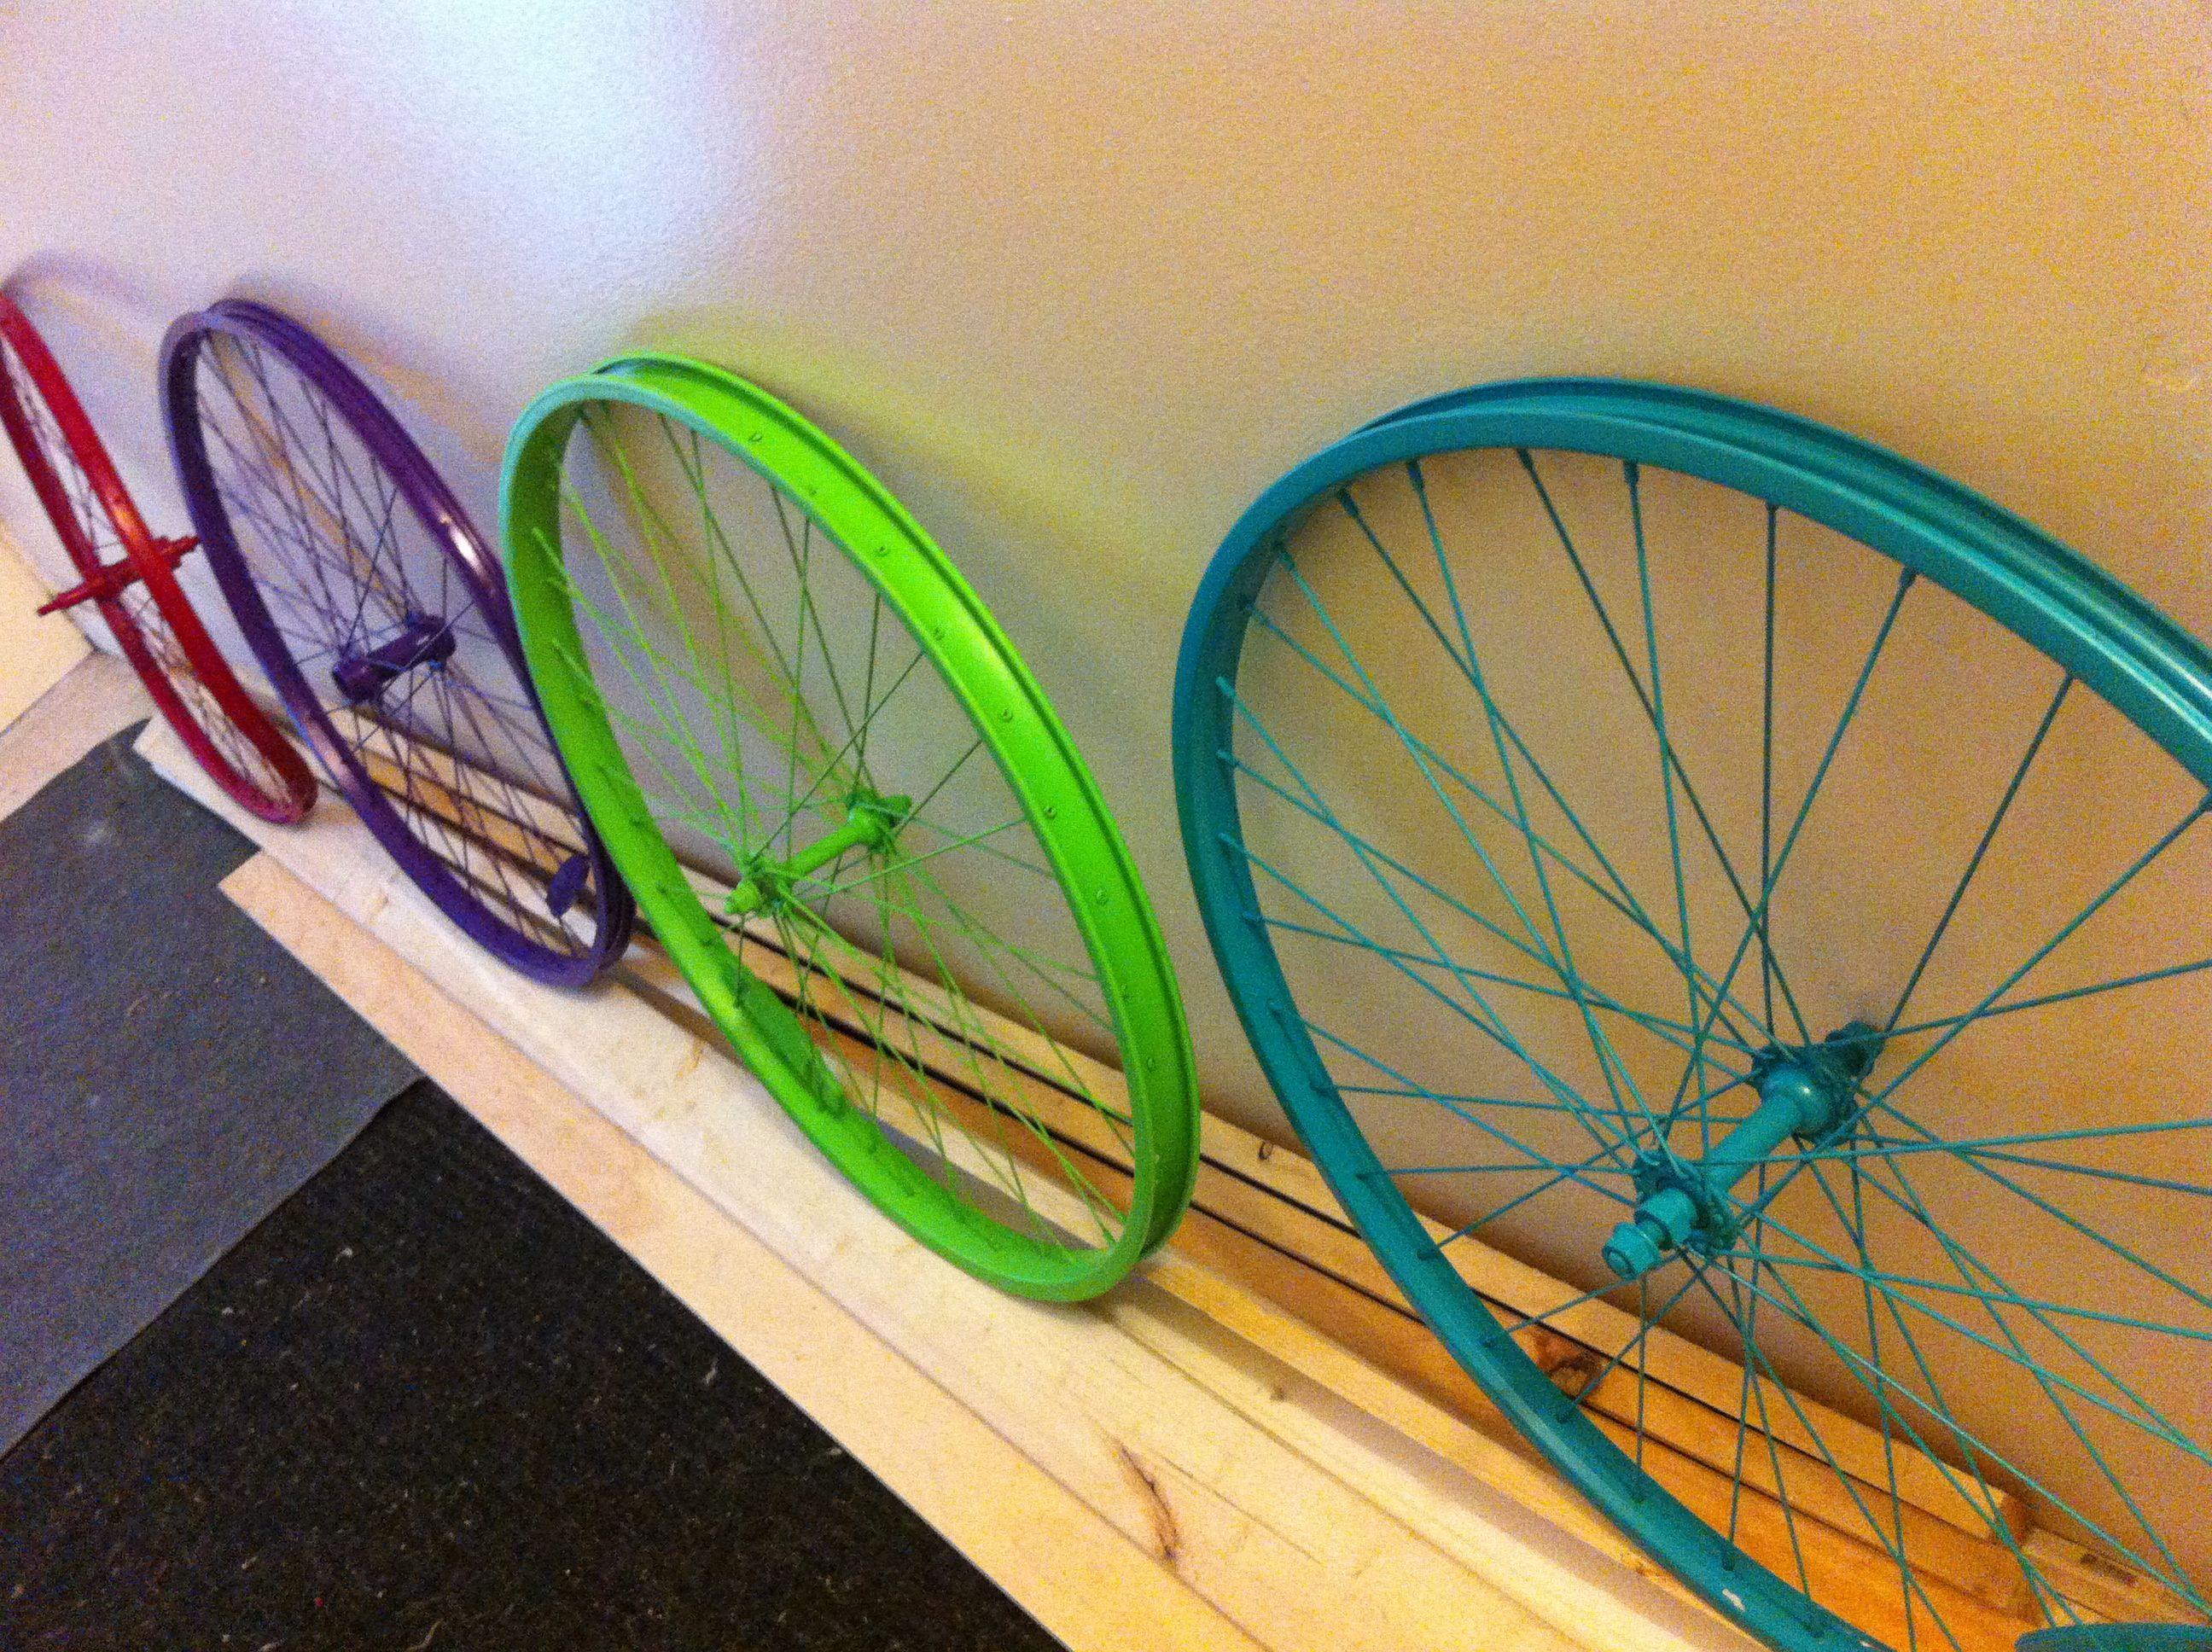 Bike spokes painted with graffiti spray paint in hot bright colours million things you can do with these guys